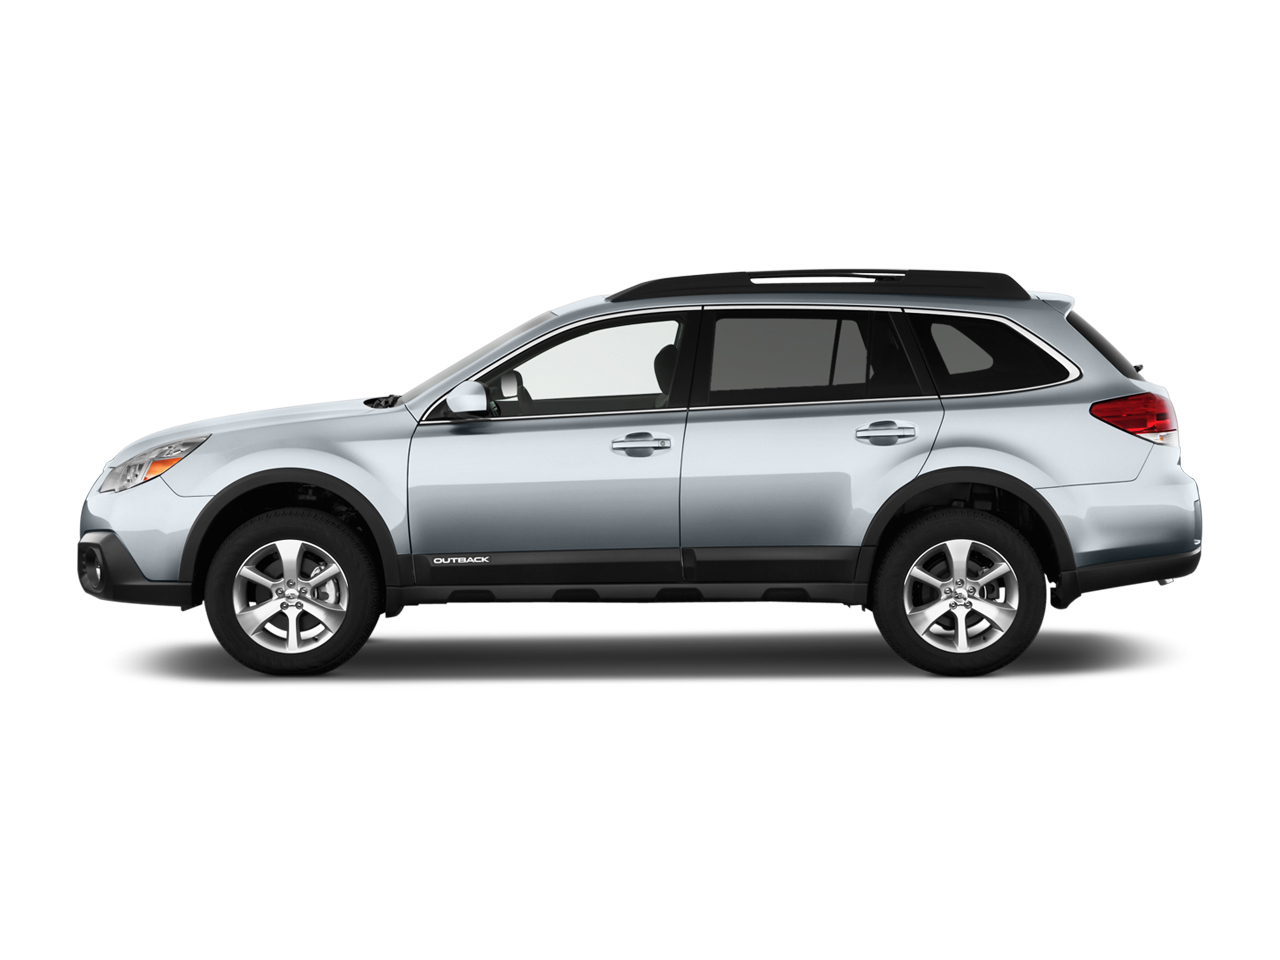 2014 Subaru Outback Review Ratings Specs Prices And